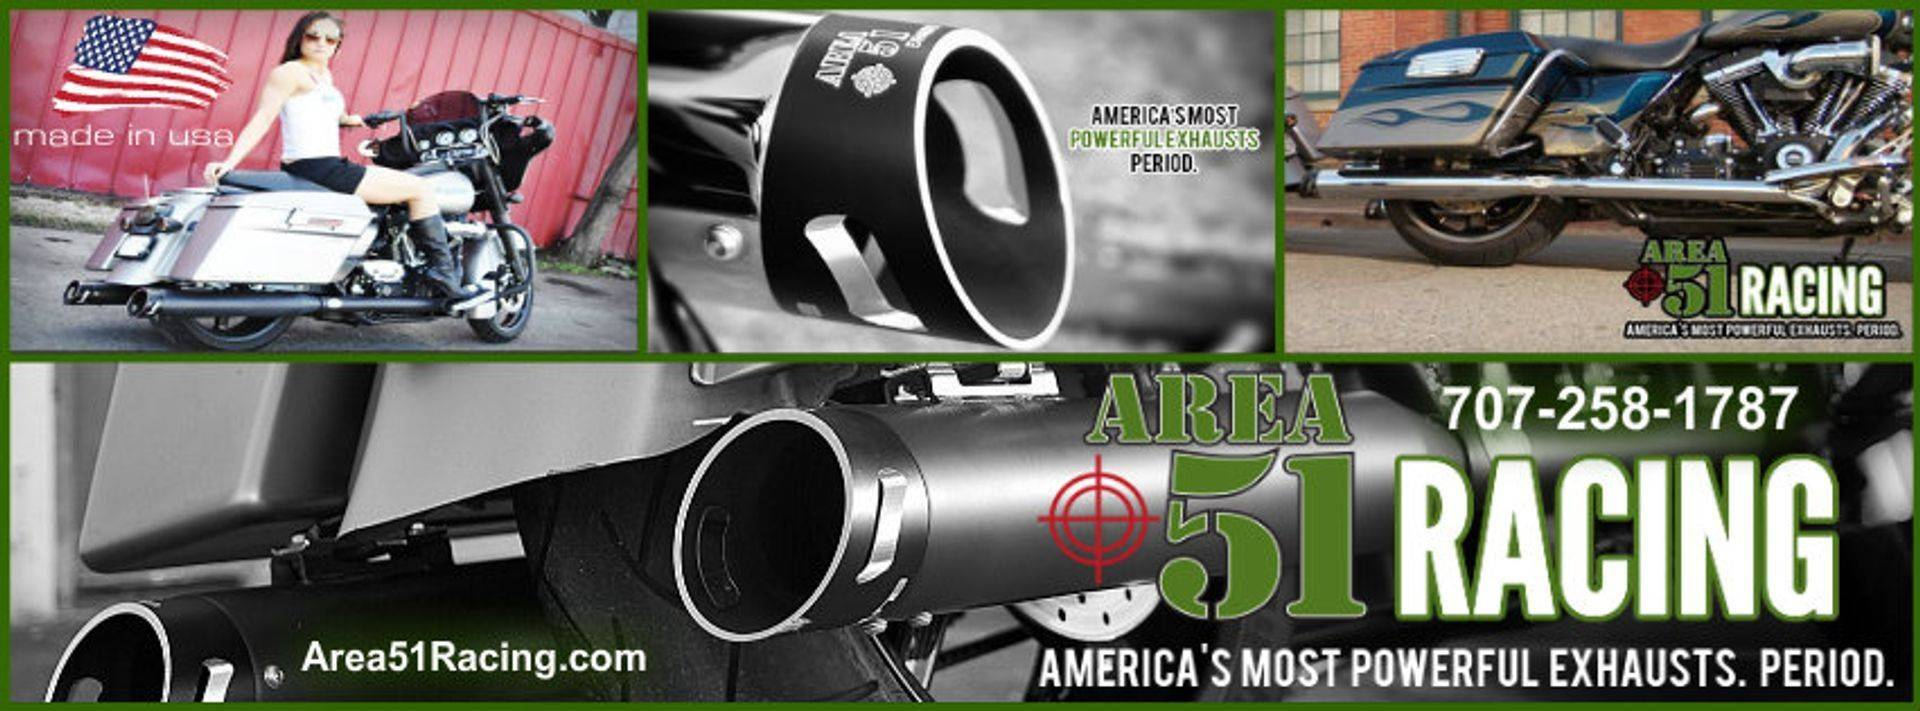 Area 51 Racing Motorcycle Exhaust